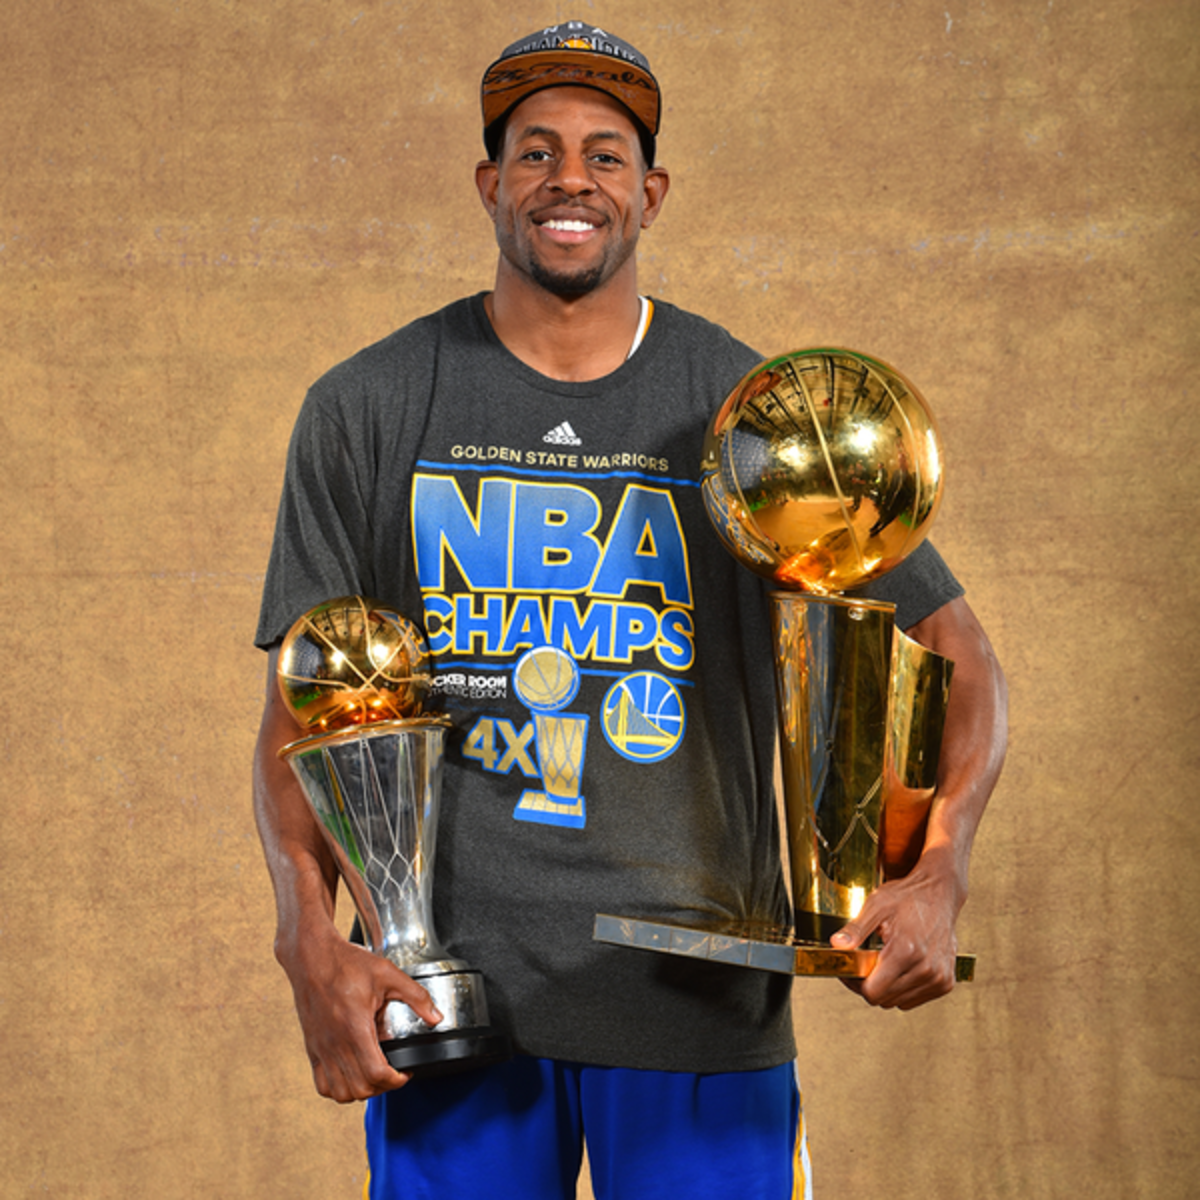 Andre Iguodala was key in the Warriors' 2015 championship run capturing MVP honors.